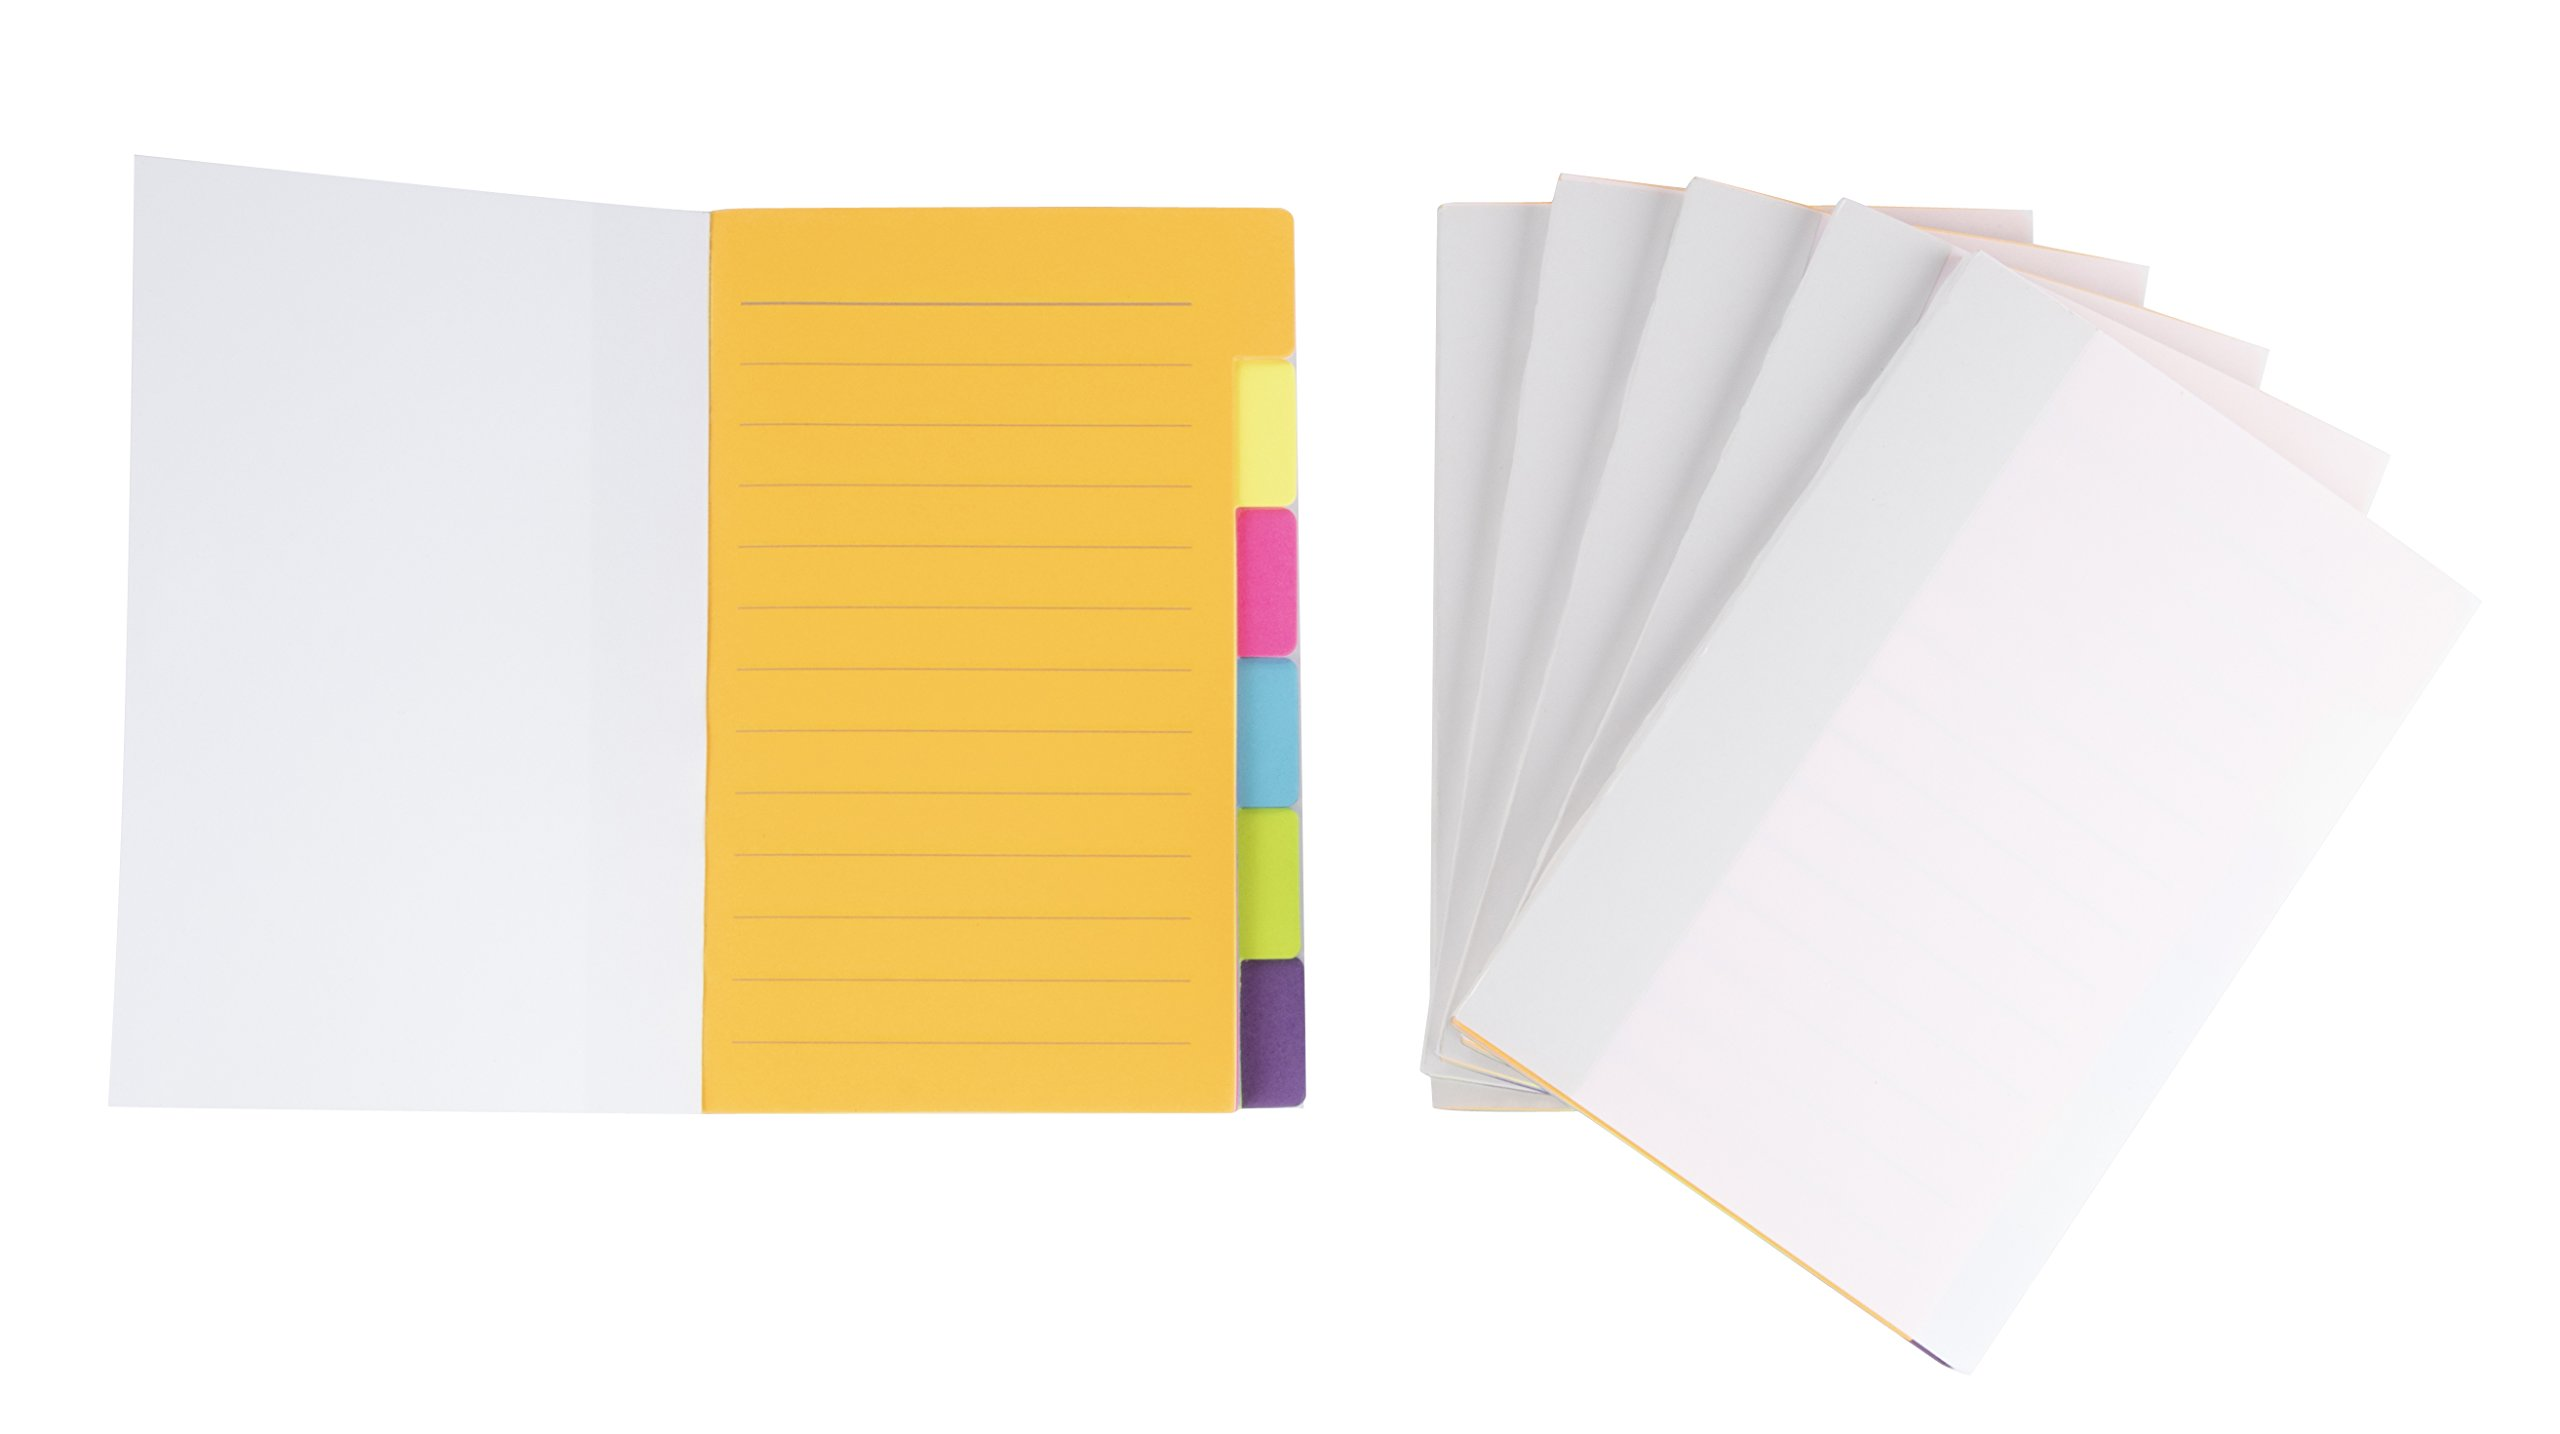 Pack of 6 Index Tabs - Divider Sticker Notes, 360 Ruled Notes, Bookmark Stickers- Color Coded for Students, Office Use, Home Use, 4 x 6 inches